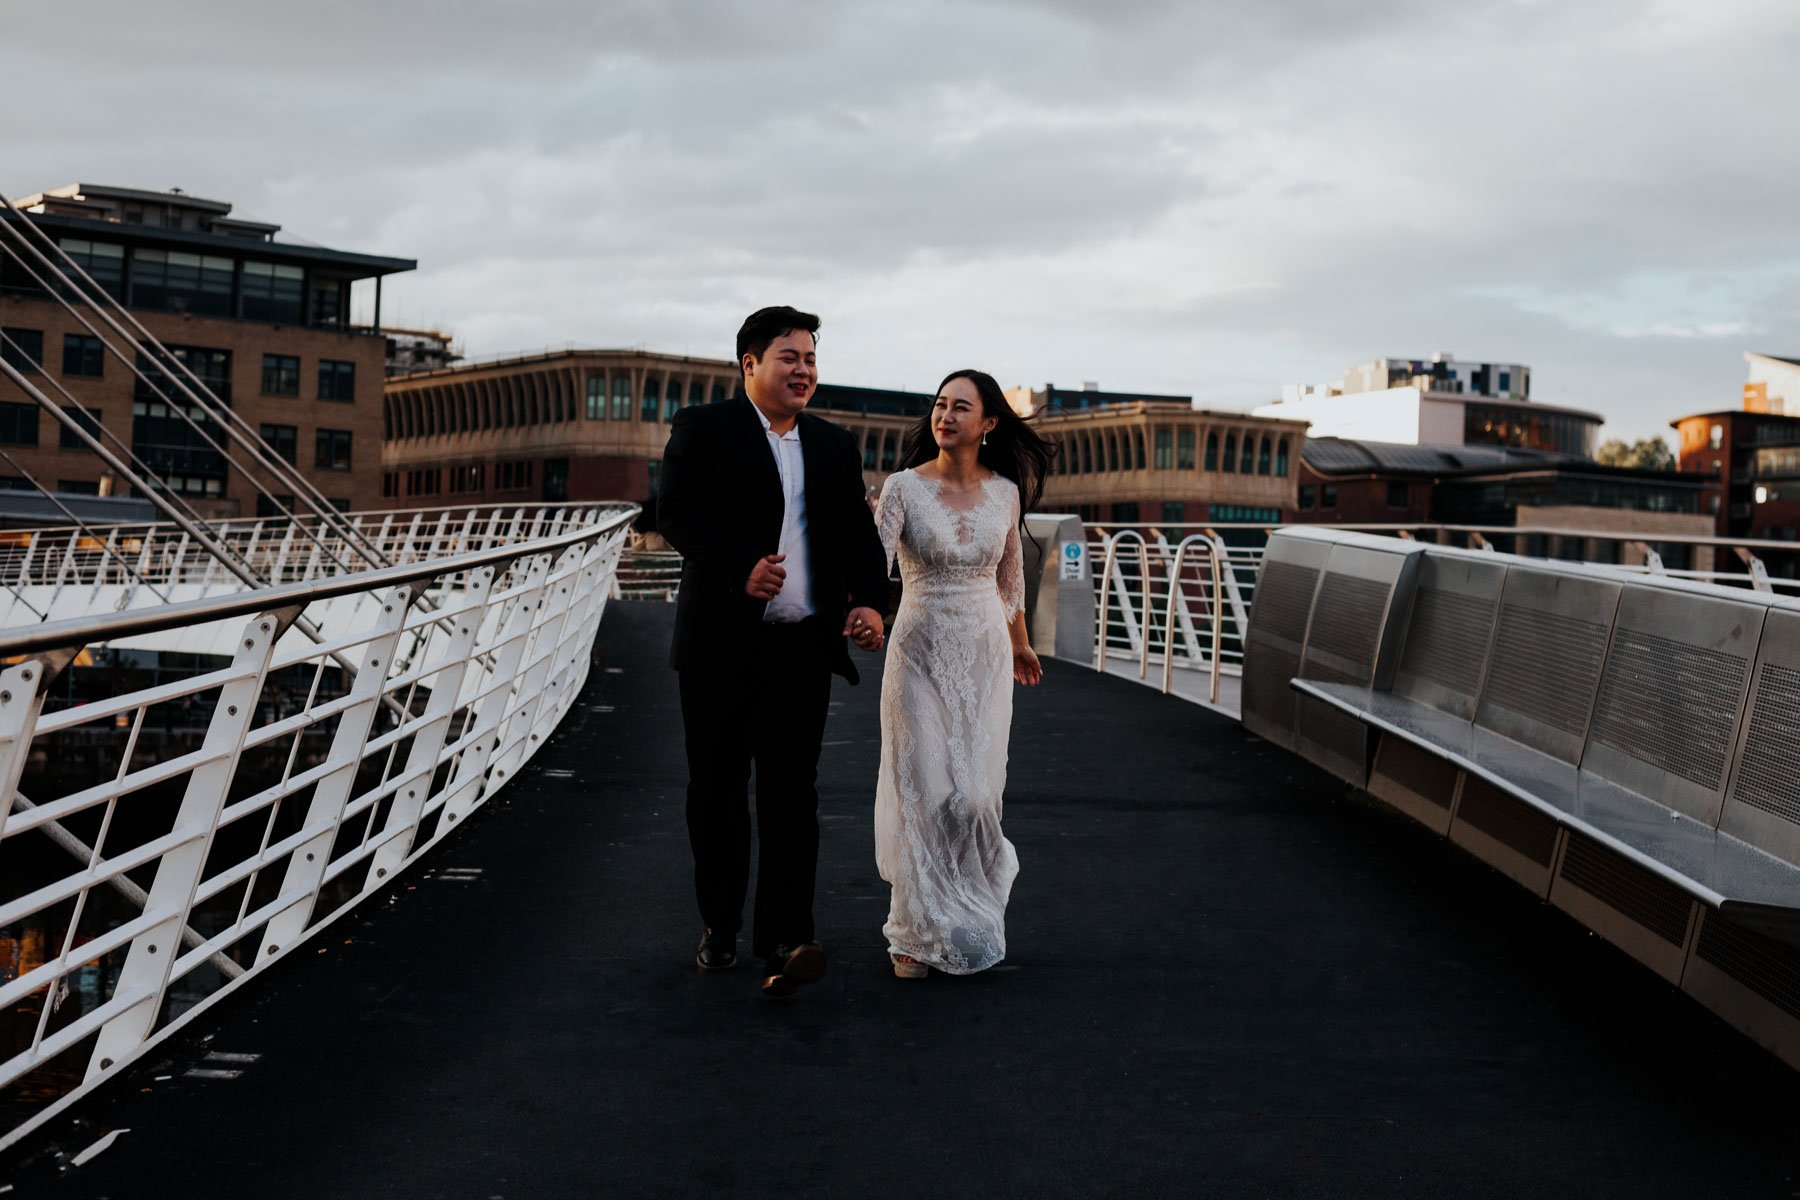 Newcastle City Wedding - The millennium bridge